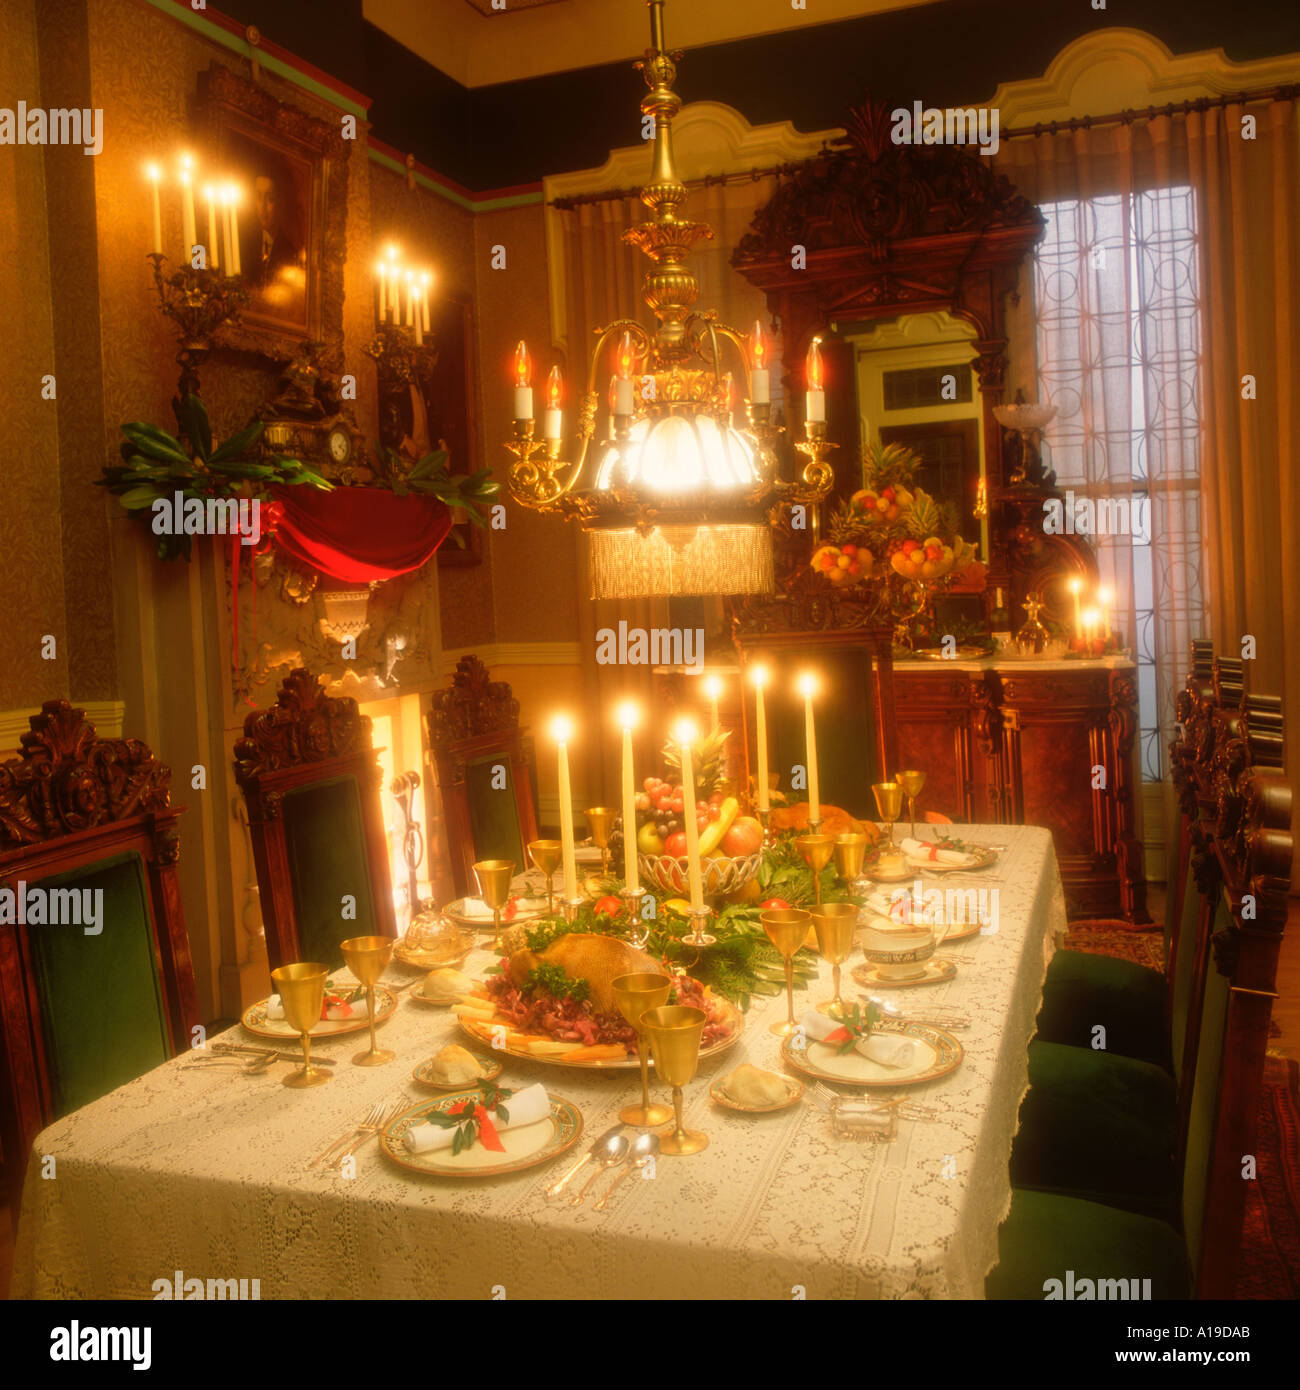 Victorian Christmas dinner table setting Stock Photo, Royalty Free ...